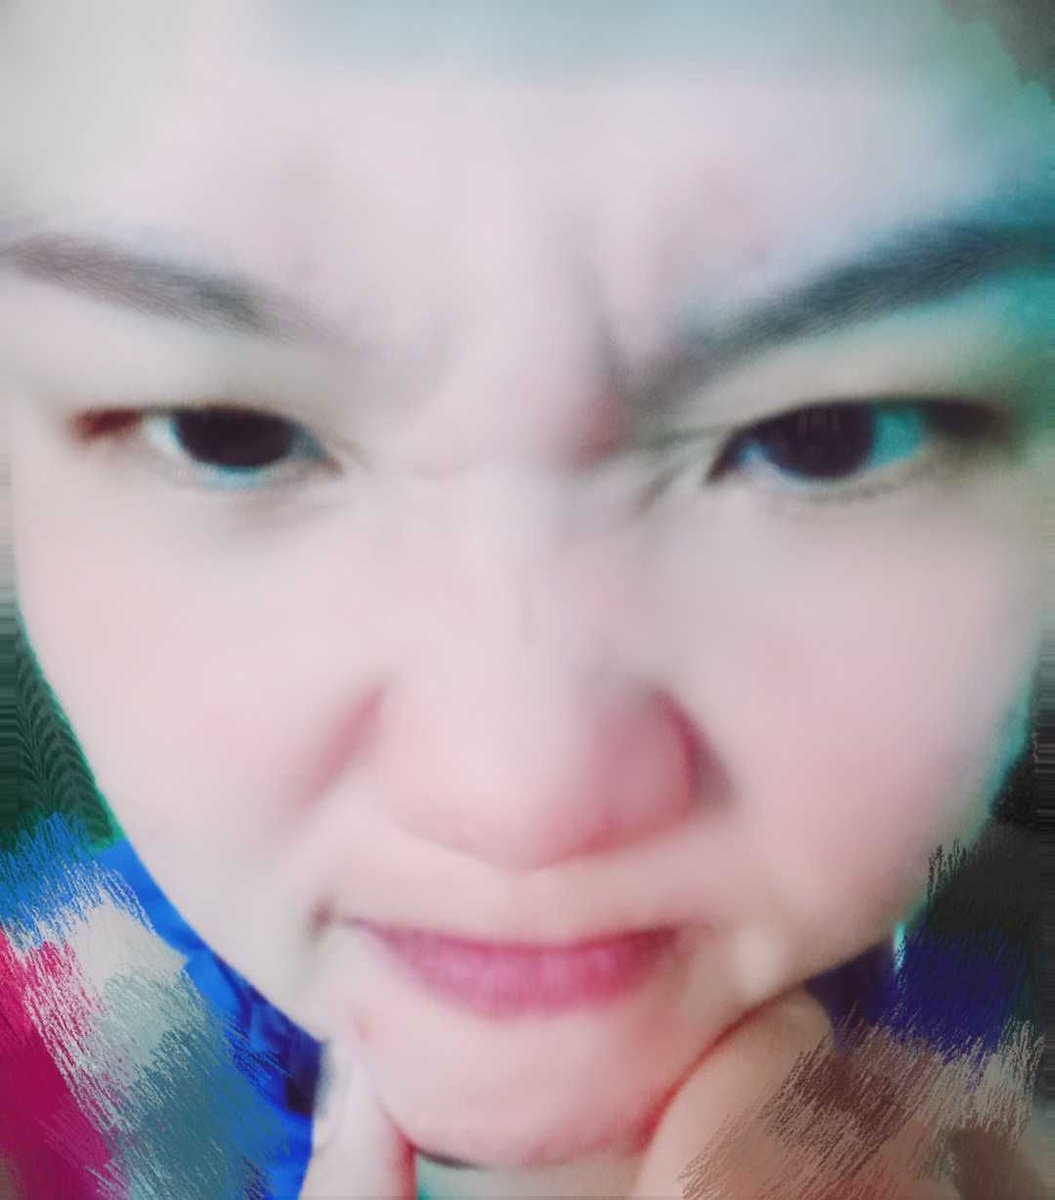 #ARMYSELCADAY I think we are in the same mood here..#suga #minyoongi @BTS_twtpic.twitter.com/xJqlVxcfGy